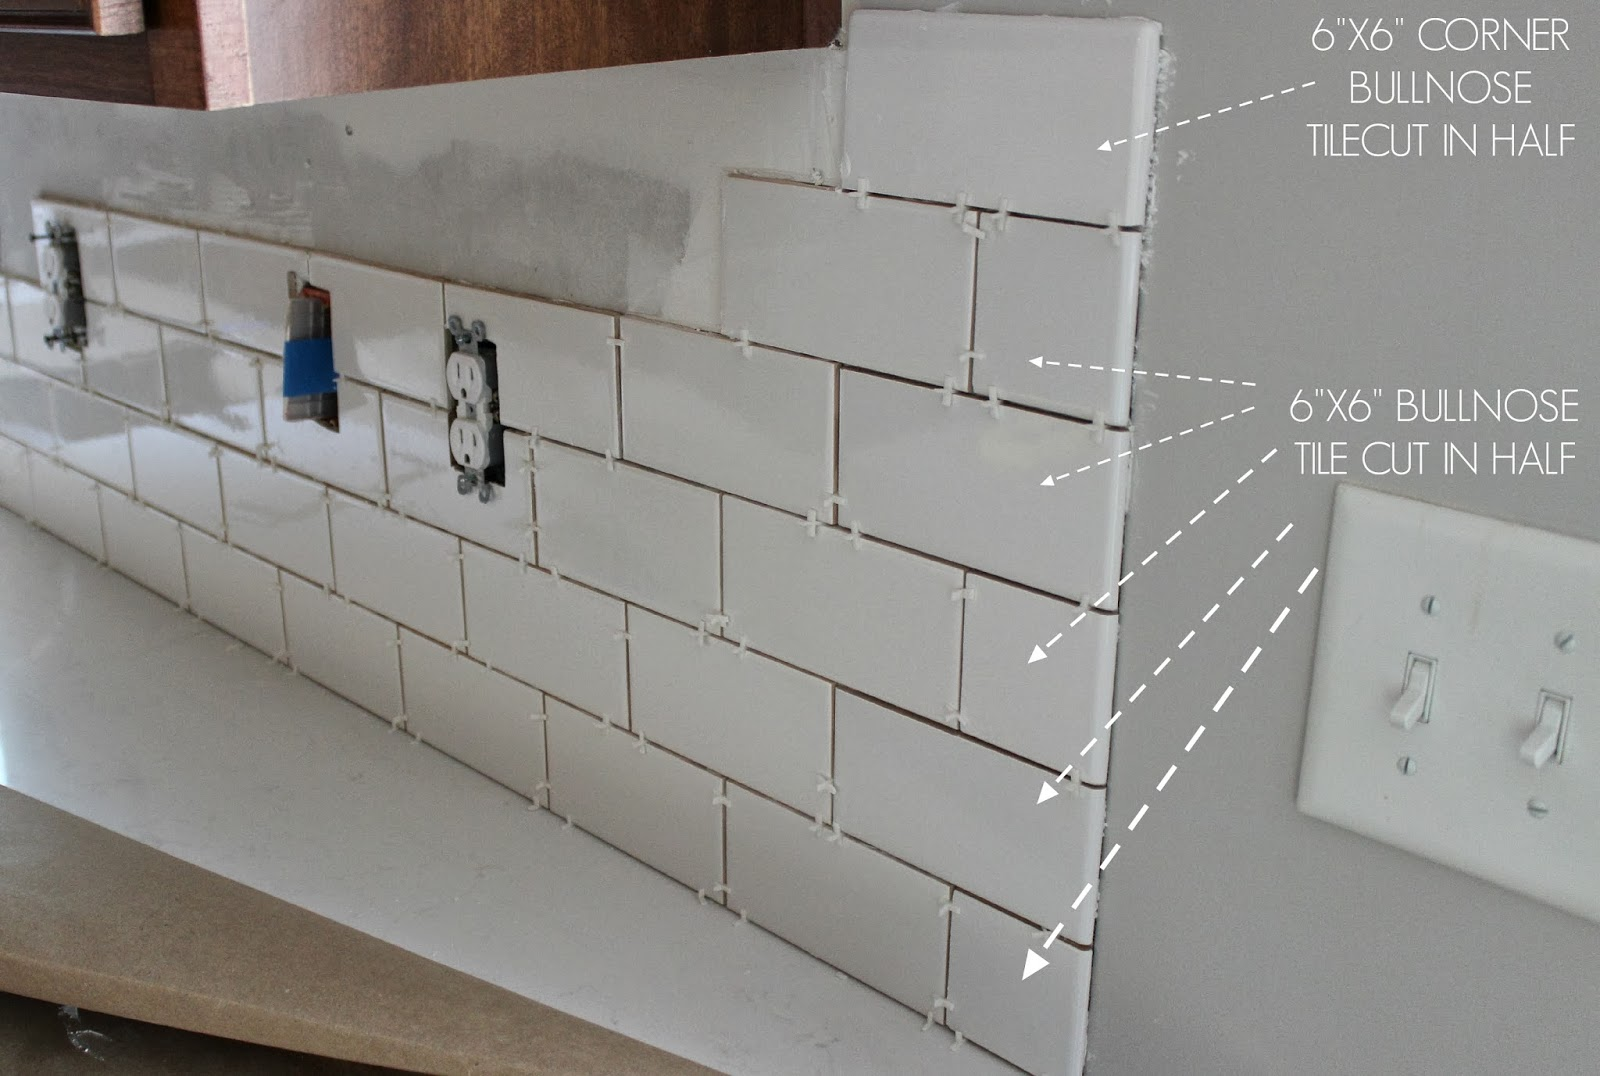 Duo ventures kitchen makeover subway tile backsplash installation in the end our plan worked out gave us a finished look that we really liked however we wanted to mention something regarding the tile cuts when we dailygadgetfo Image collections